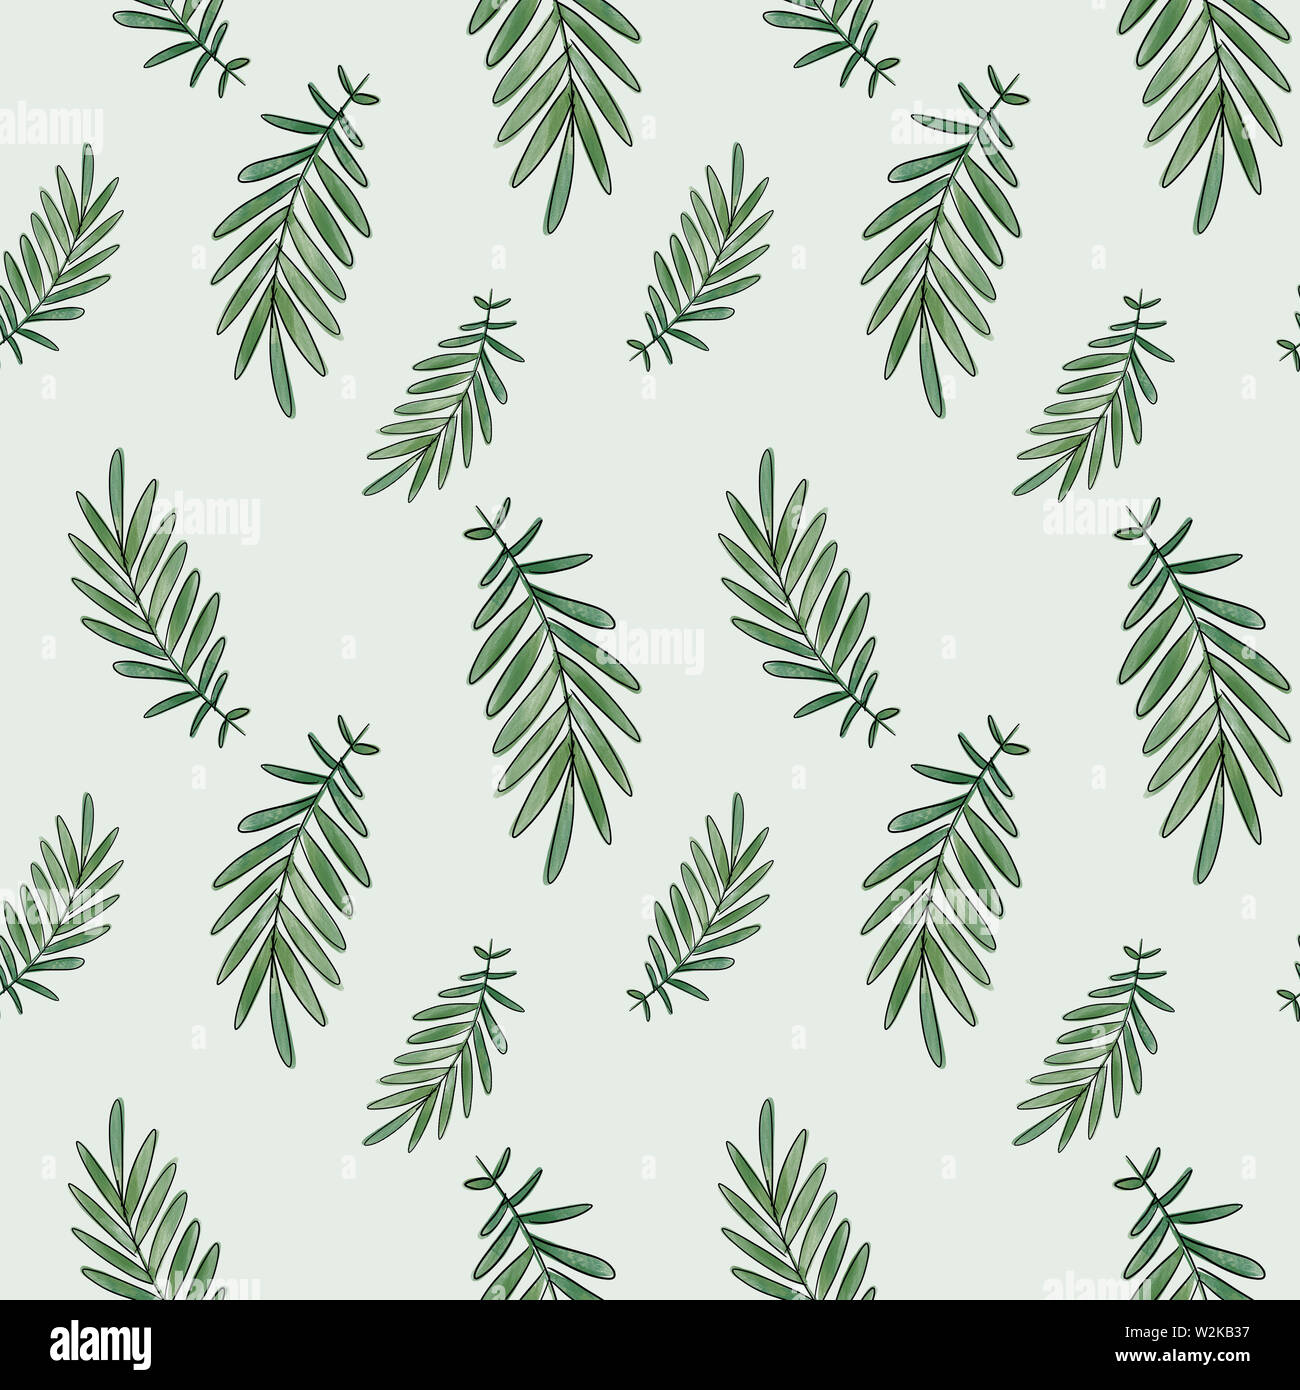 Wallpaper Of Palm Fronds With Green Background Stock Photo Alamy